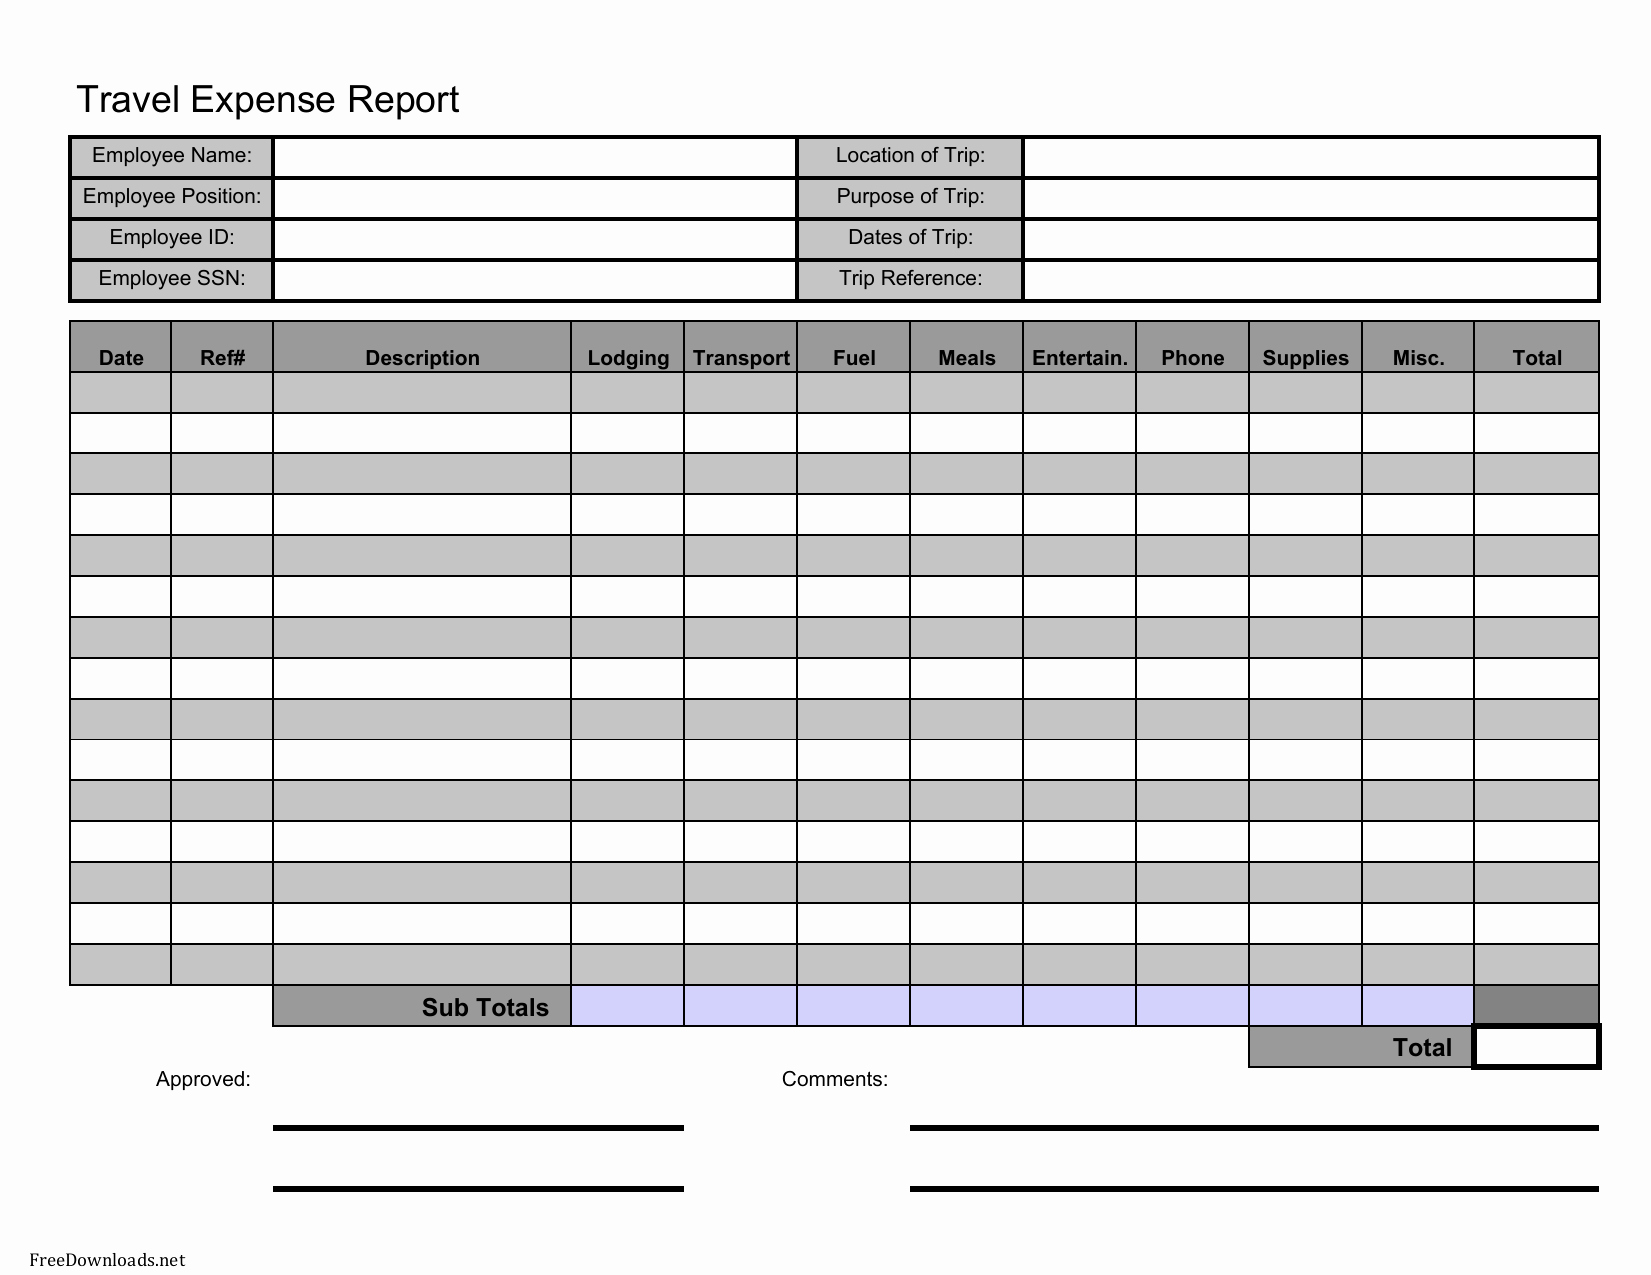 Expenses Report Template Excel Elegant Download Travel Expense Report Template Excel